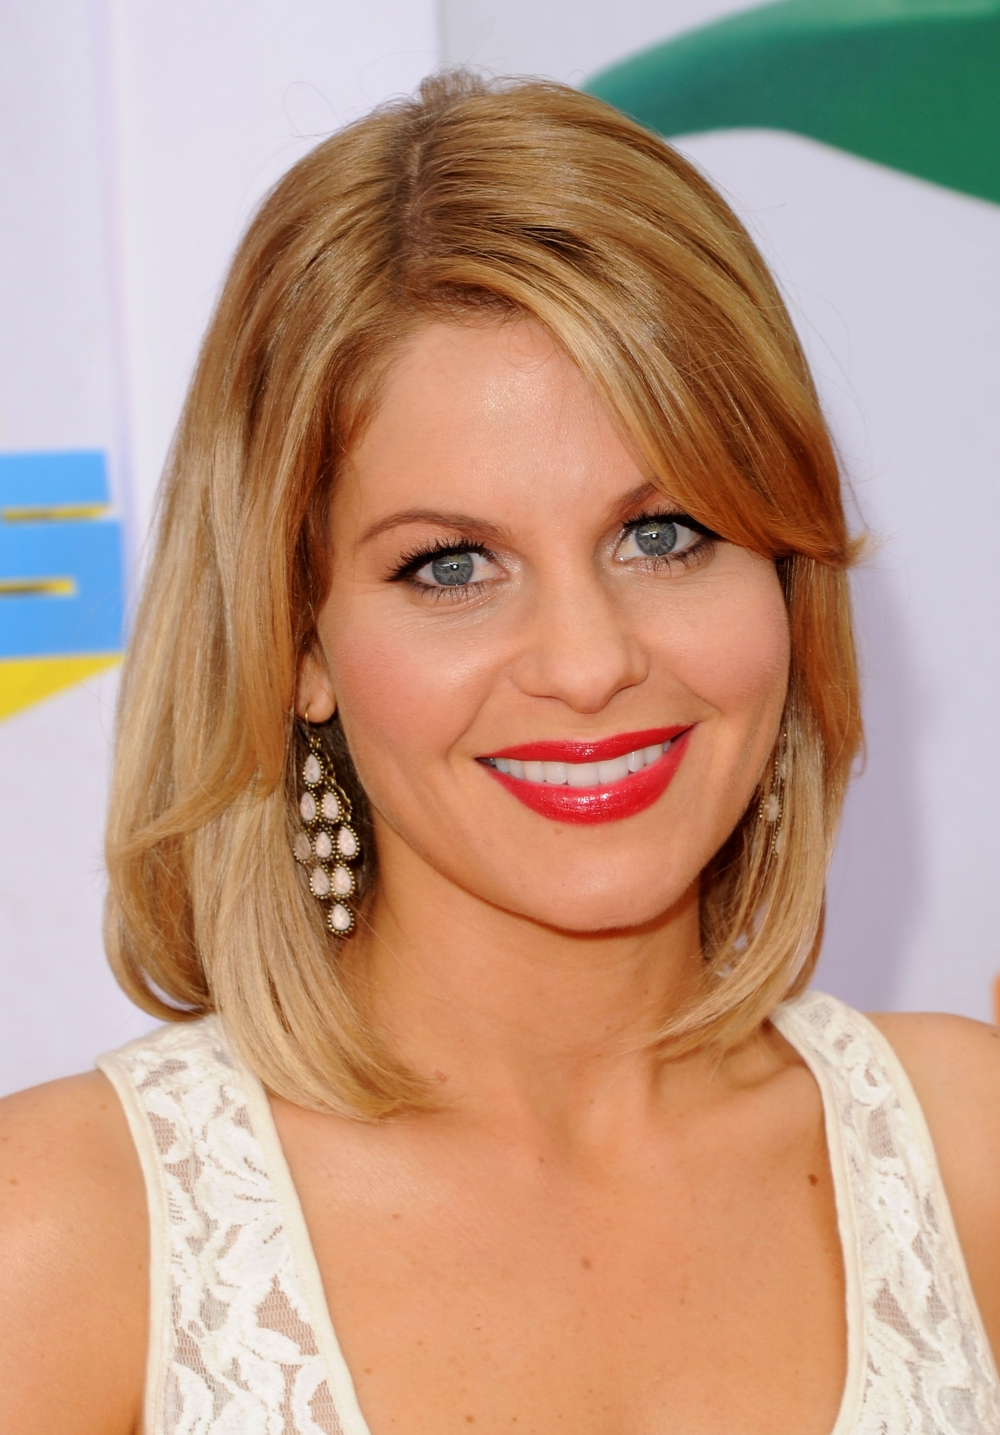 Candace Cameron Bure Reveals Which Full House Cast Member Shes Closest To — Exclusive!